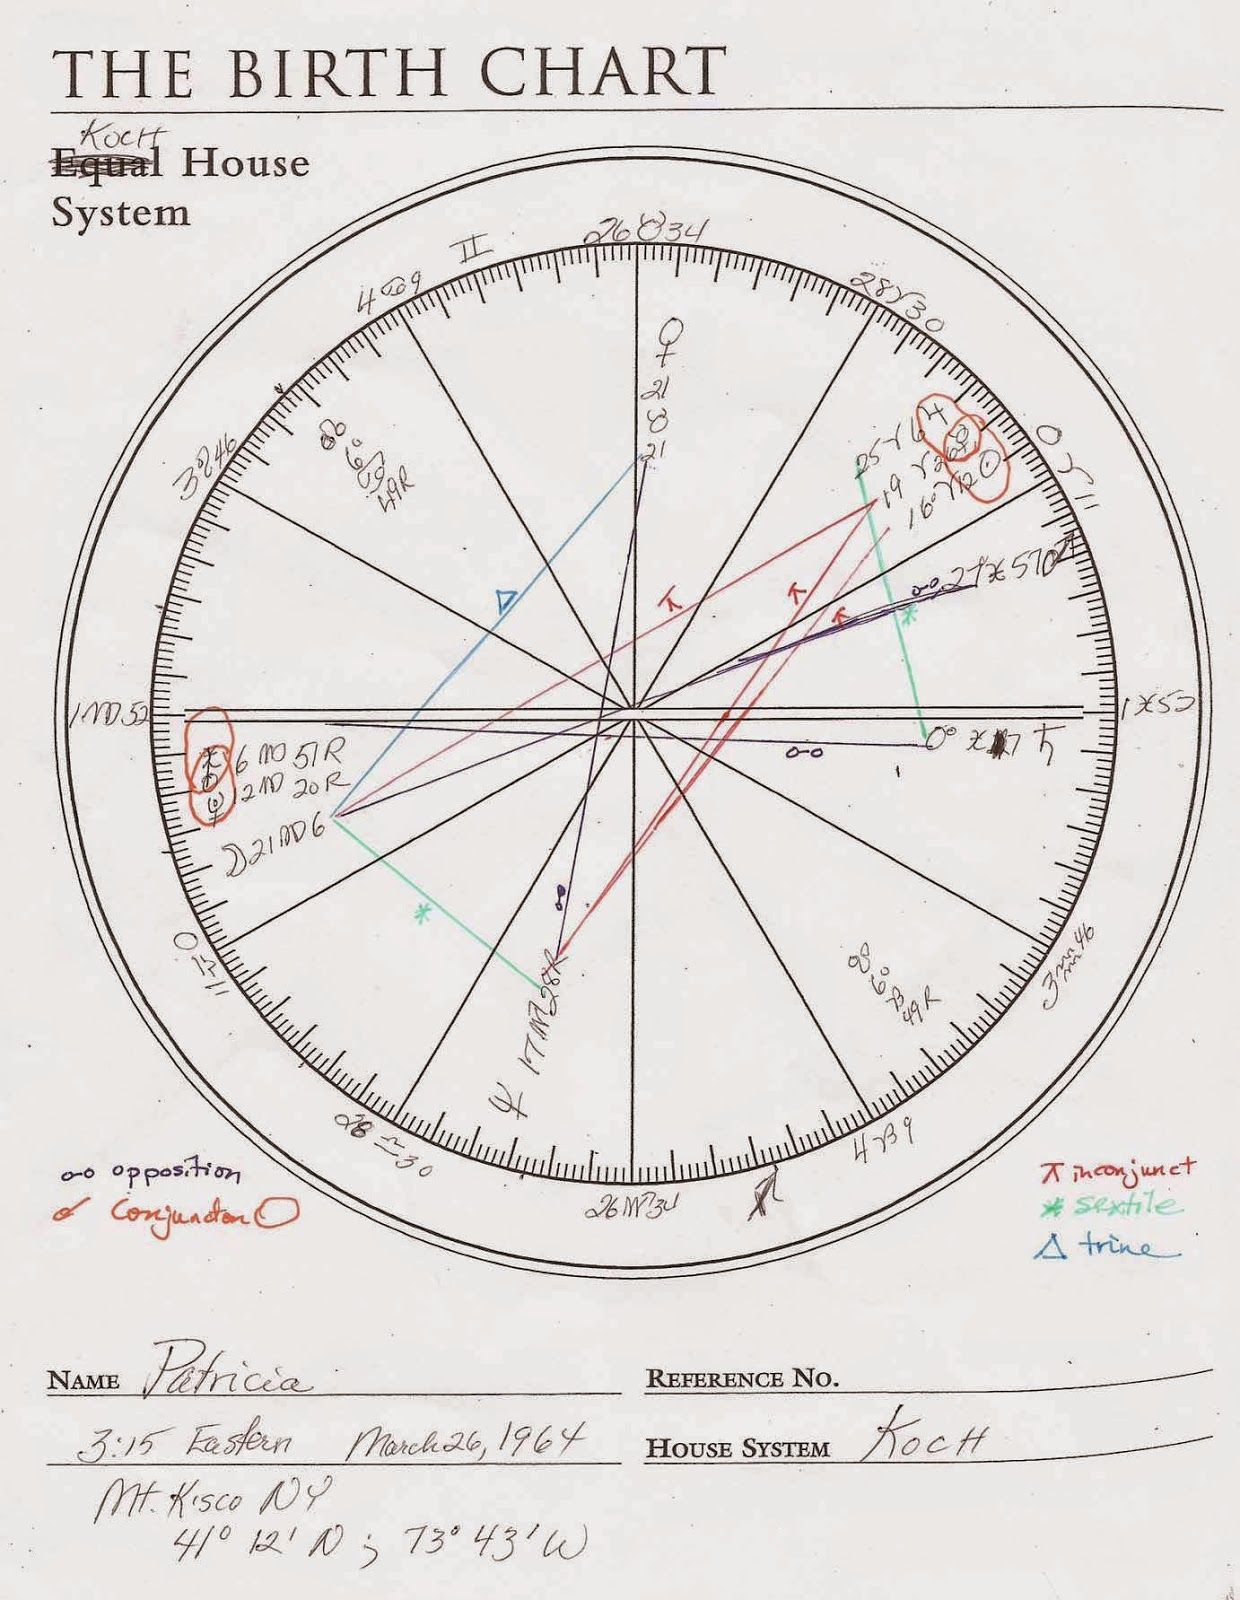 Lyric truth rosemarie beck symposium march 2015 patricias chart by her friend moonlight 2014 nvjuhfo Choice Image